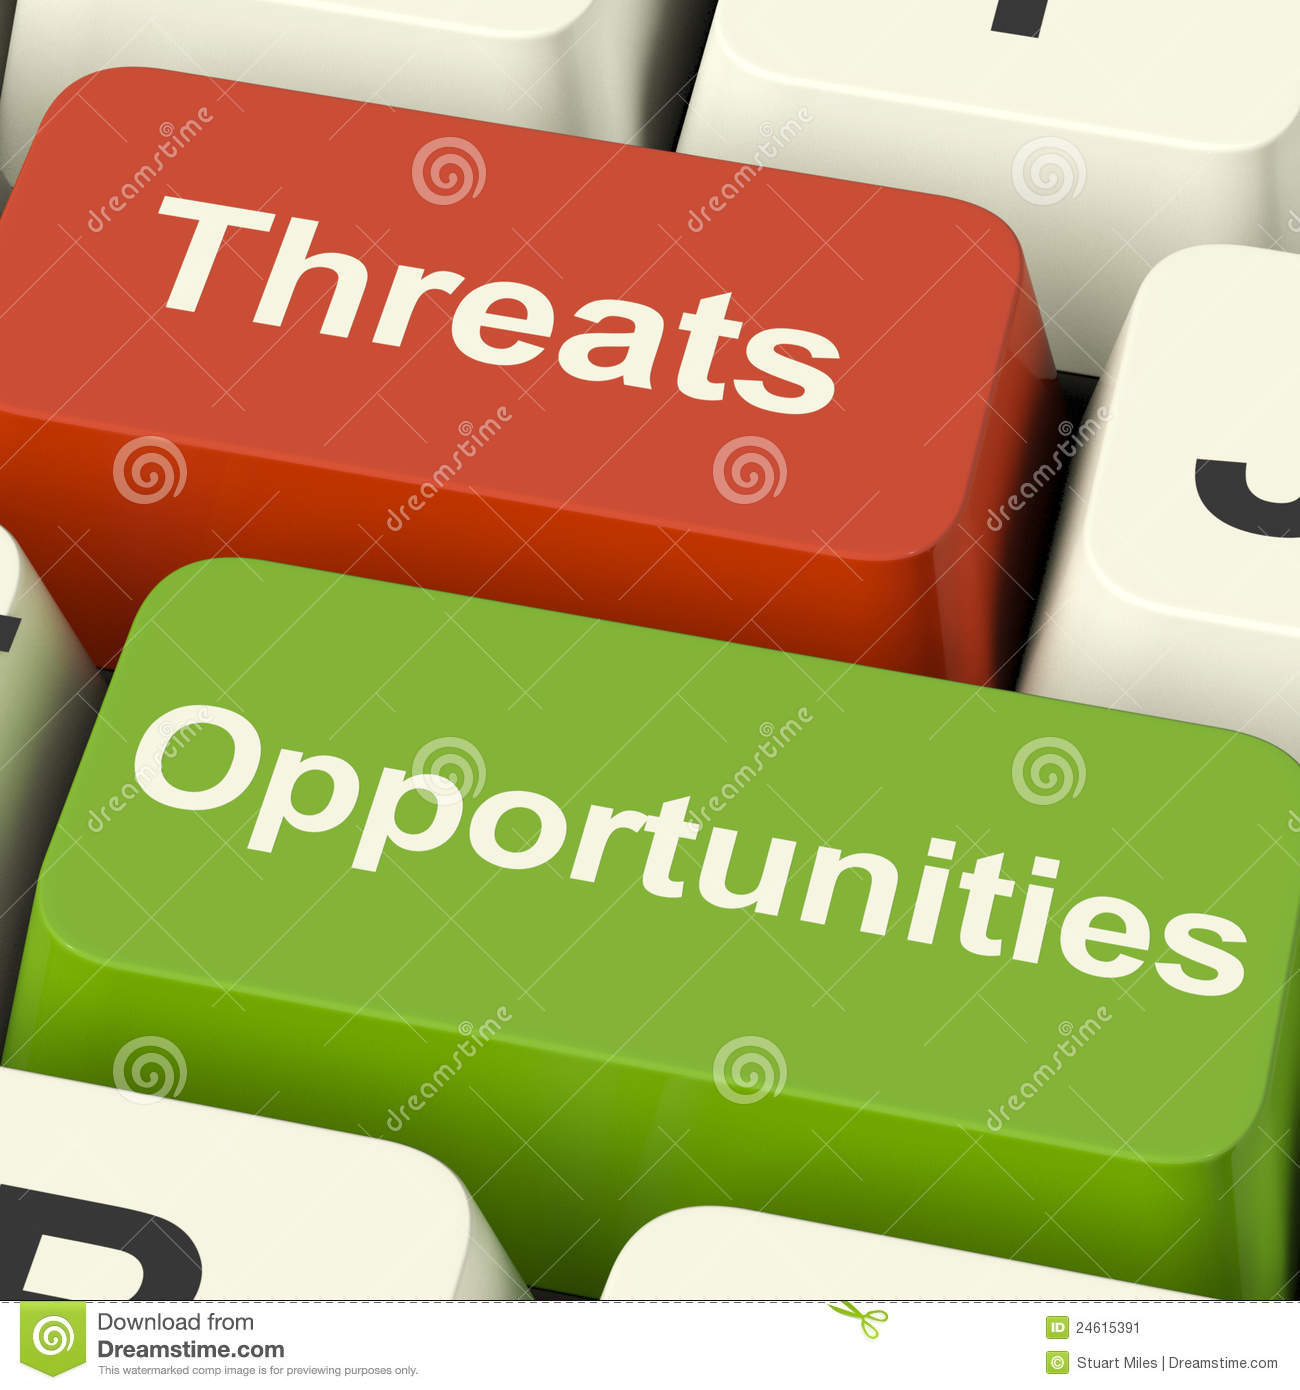 Manage Your Opportunities Be: Threats And Opportunities Computer Keys Stock Image